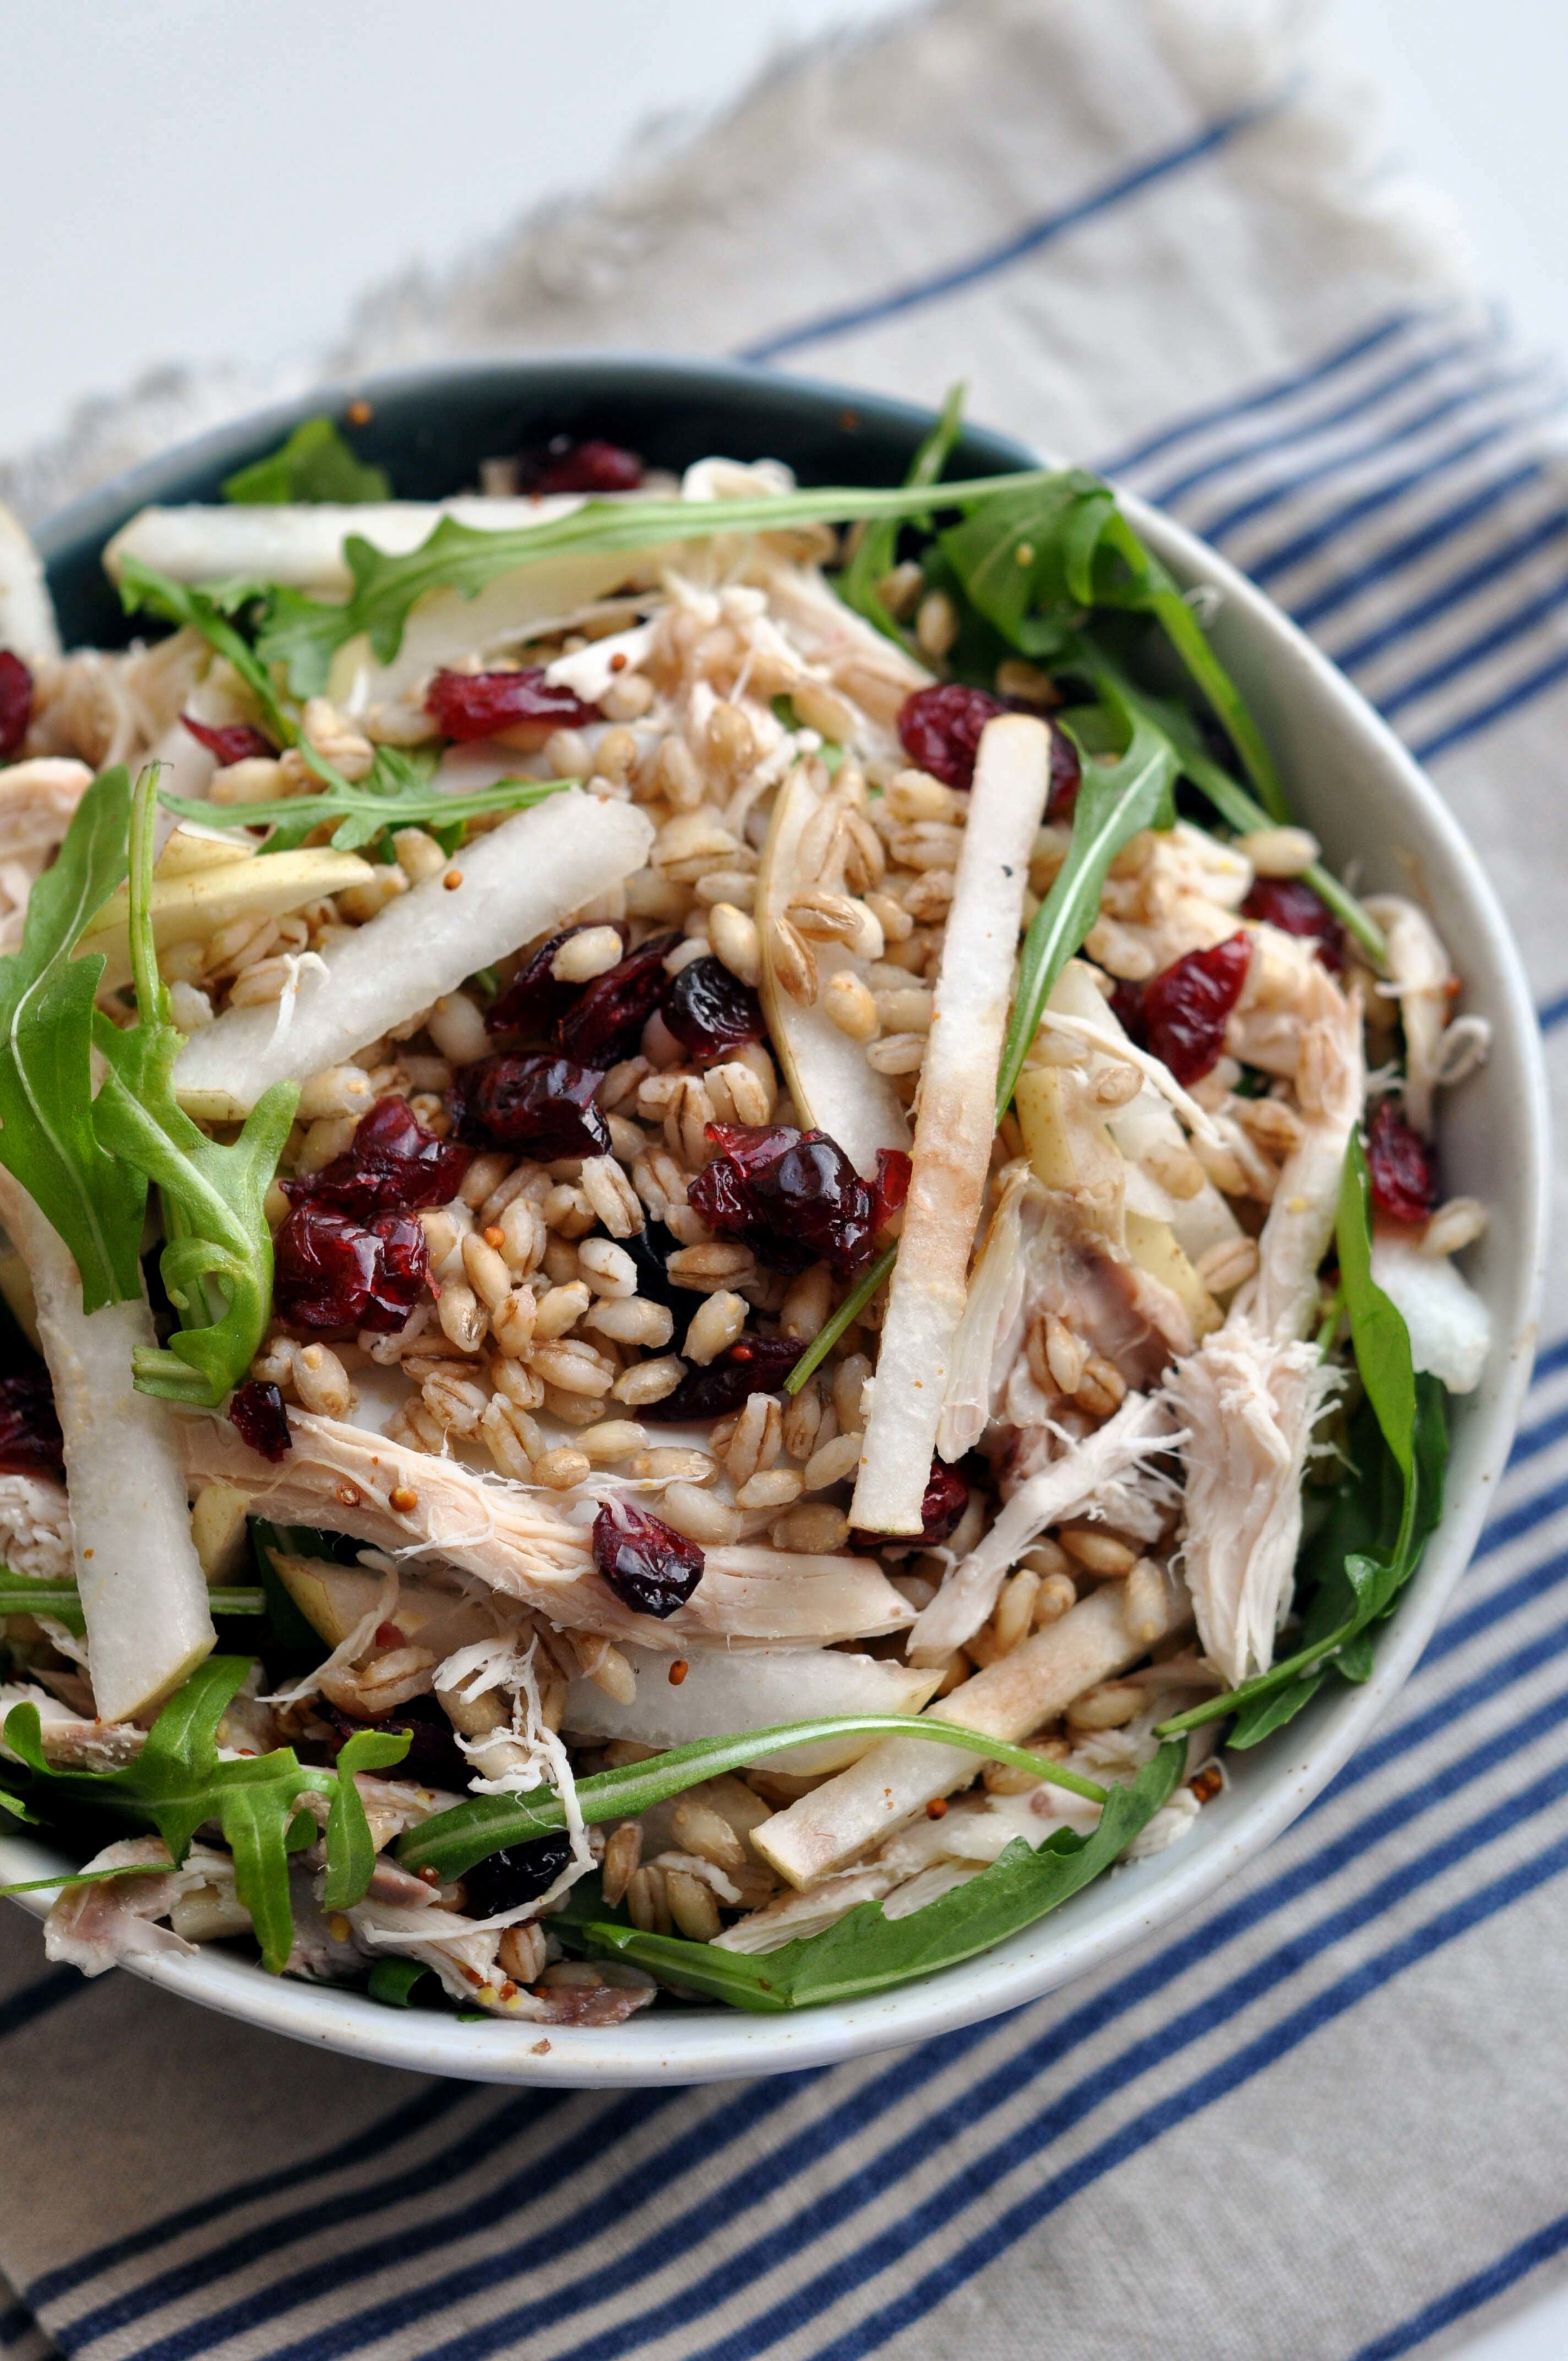 Chicken Bulgur Bowl with Arugula, Cranberries, and Pears - a healthy, easy lunch or dinner recipe.